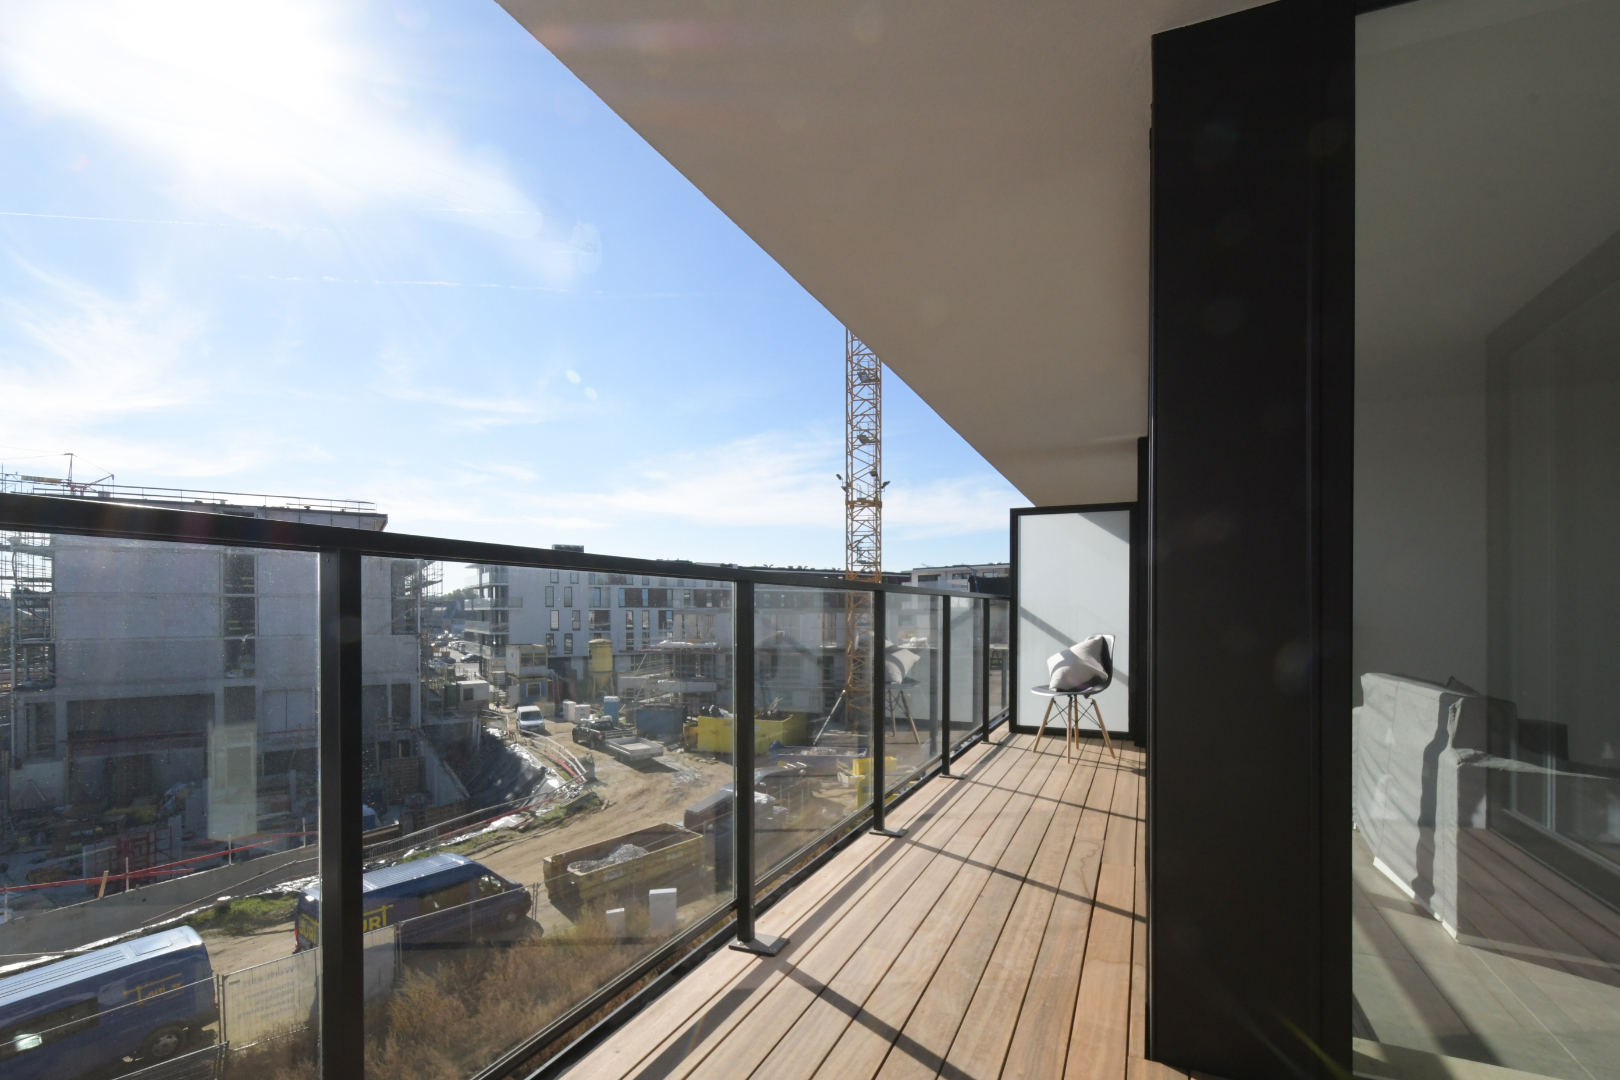 FOR RENT AT LANDBERGH: apartment in Aalter